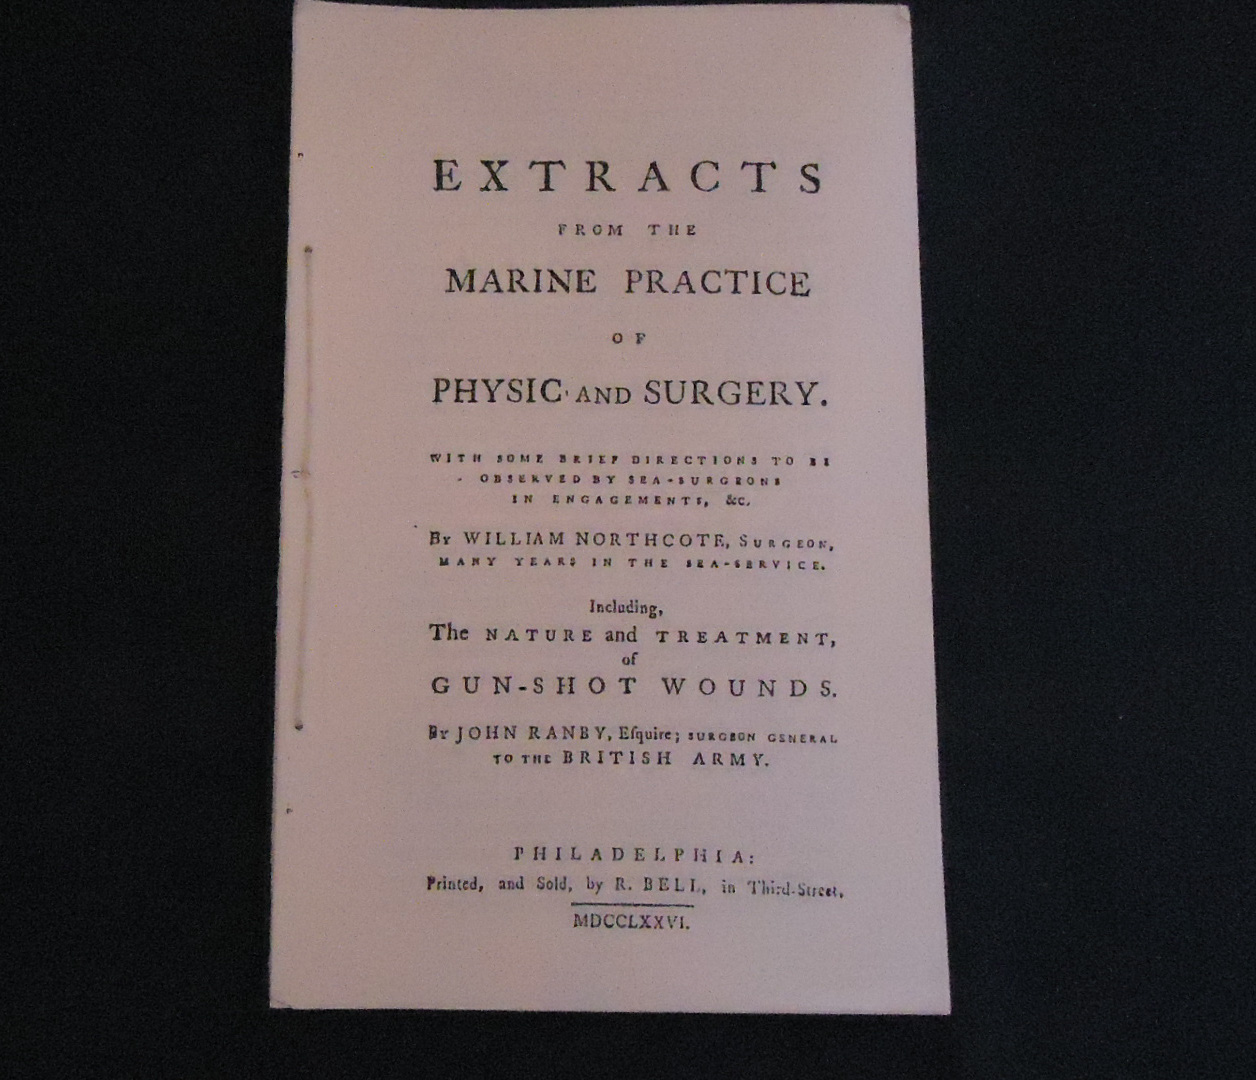 Extracts from the Marine Practice...